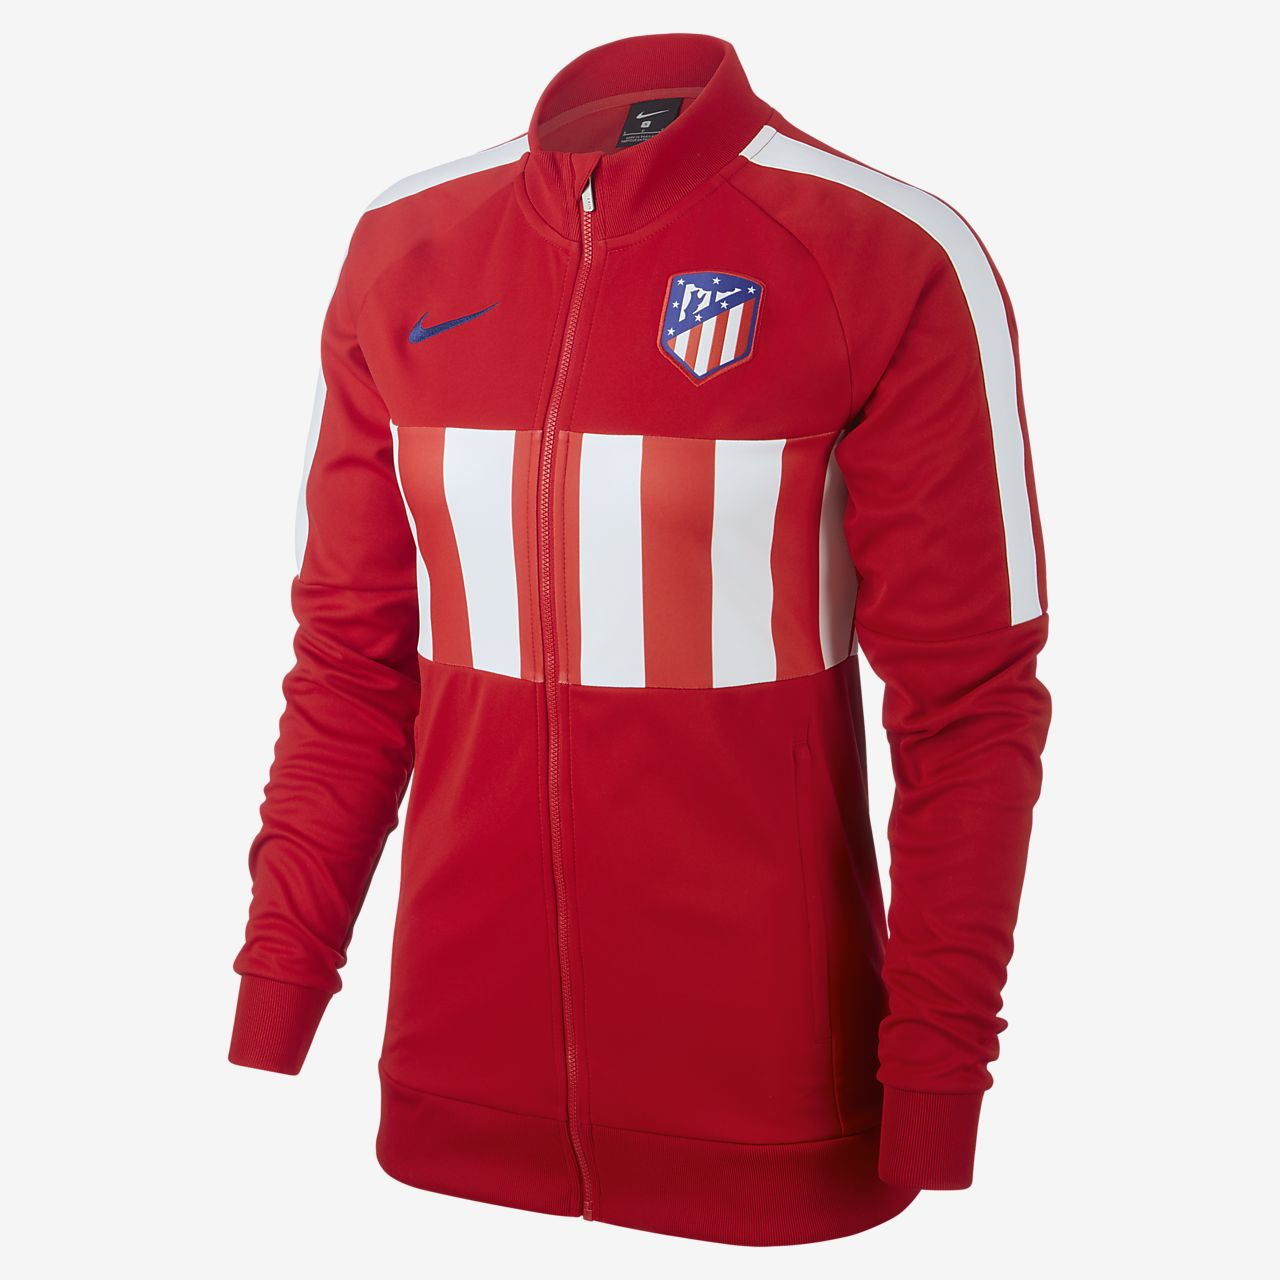 Atlético de Madrid Women's Jacket